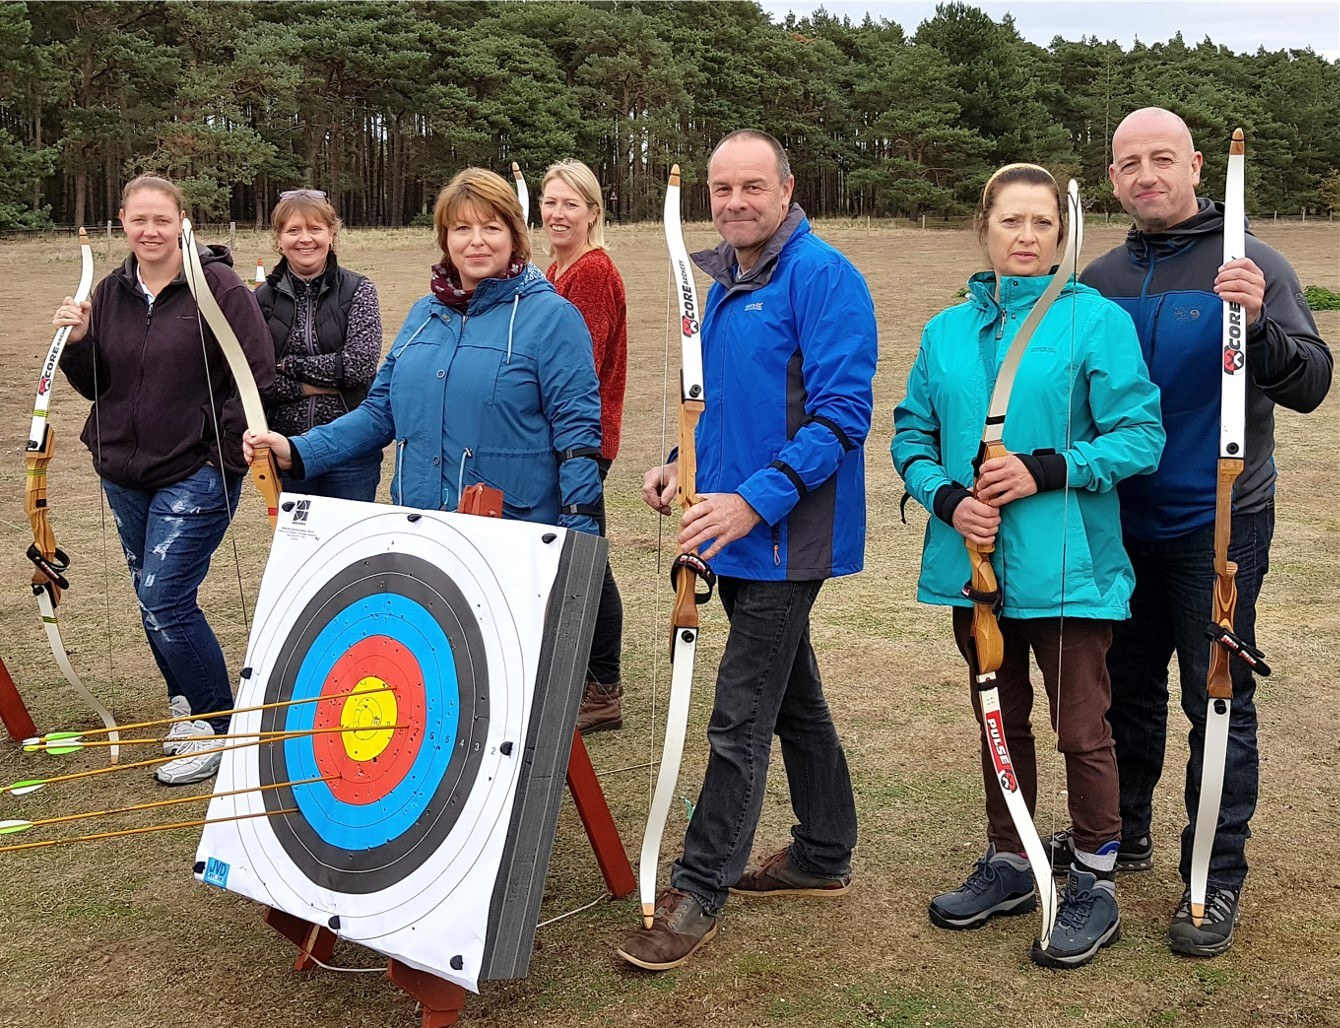 Introducing Archery Course with Arnor Archery